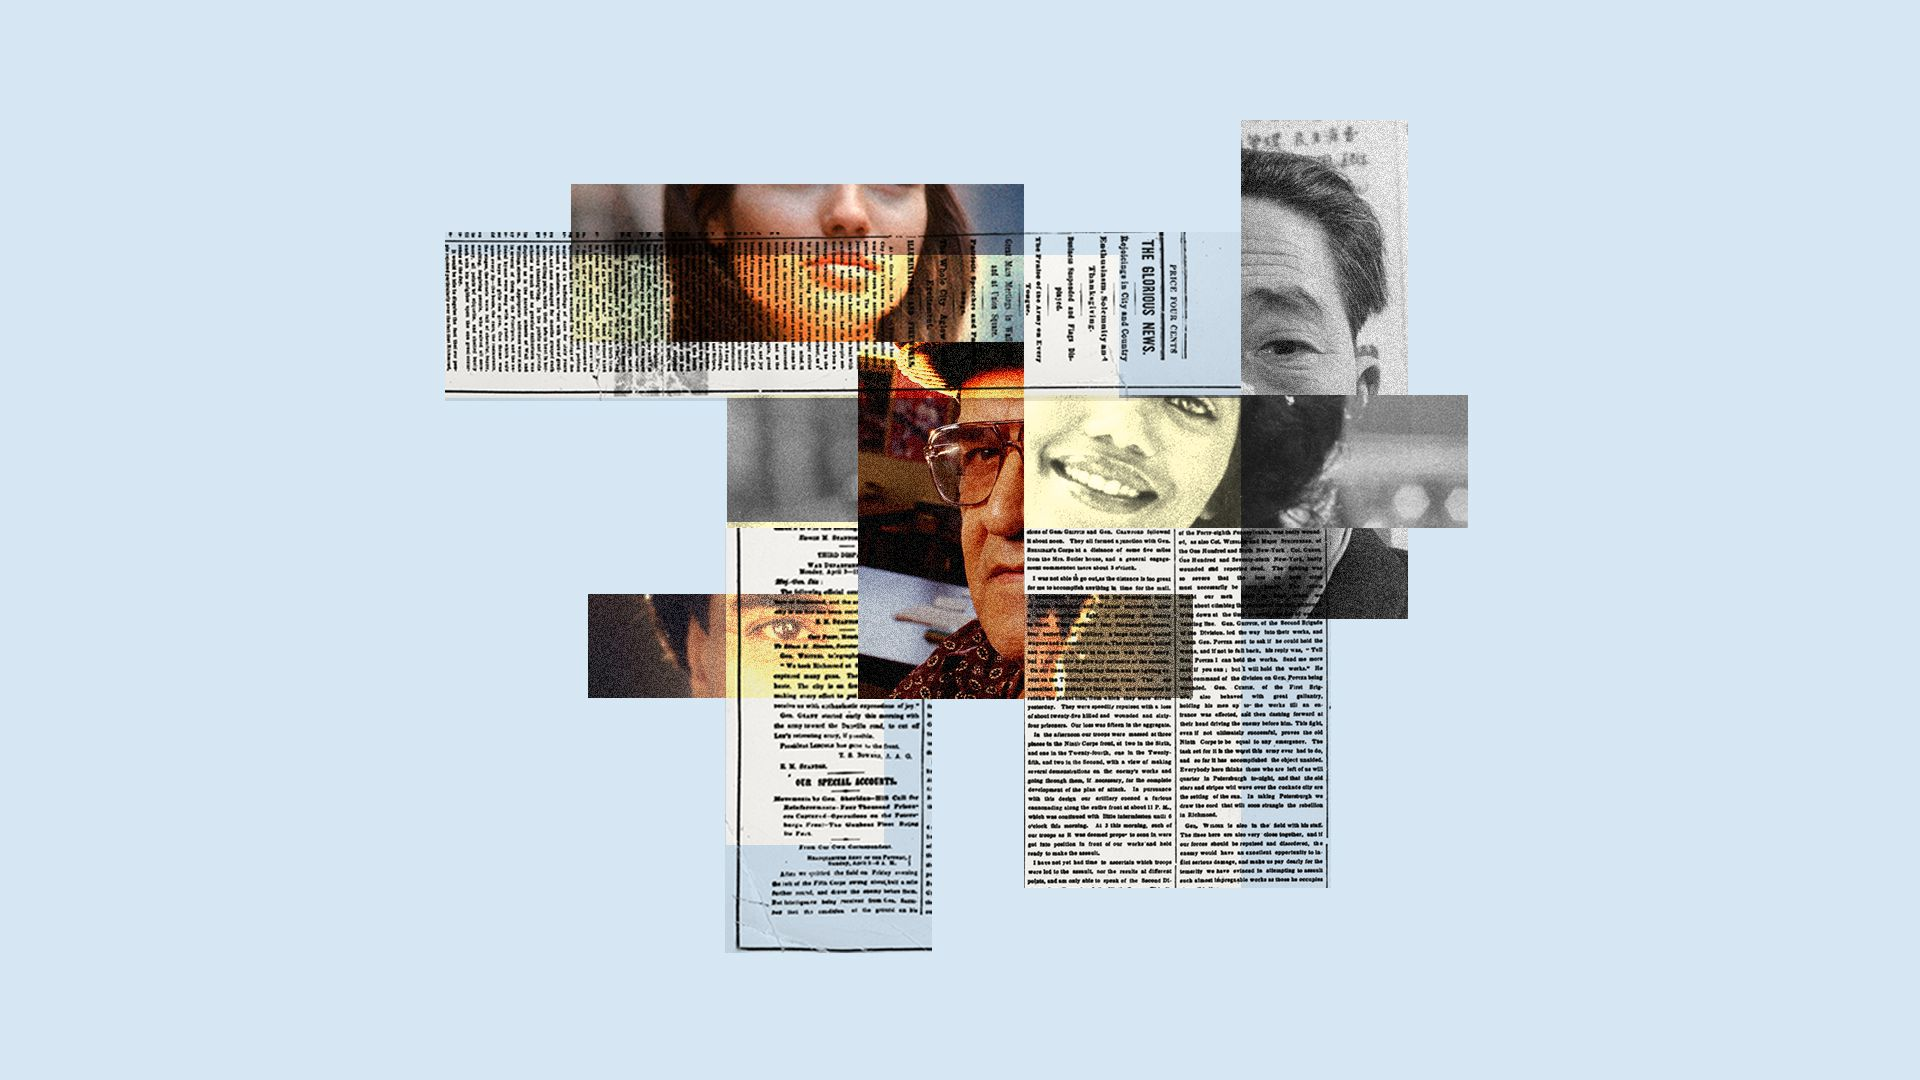 Collage about media and race